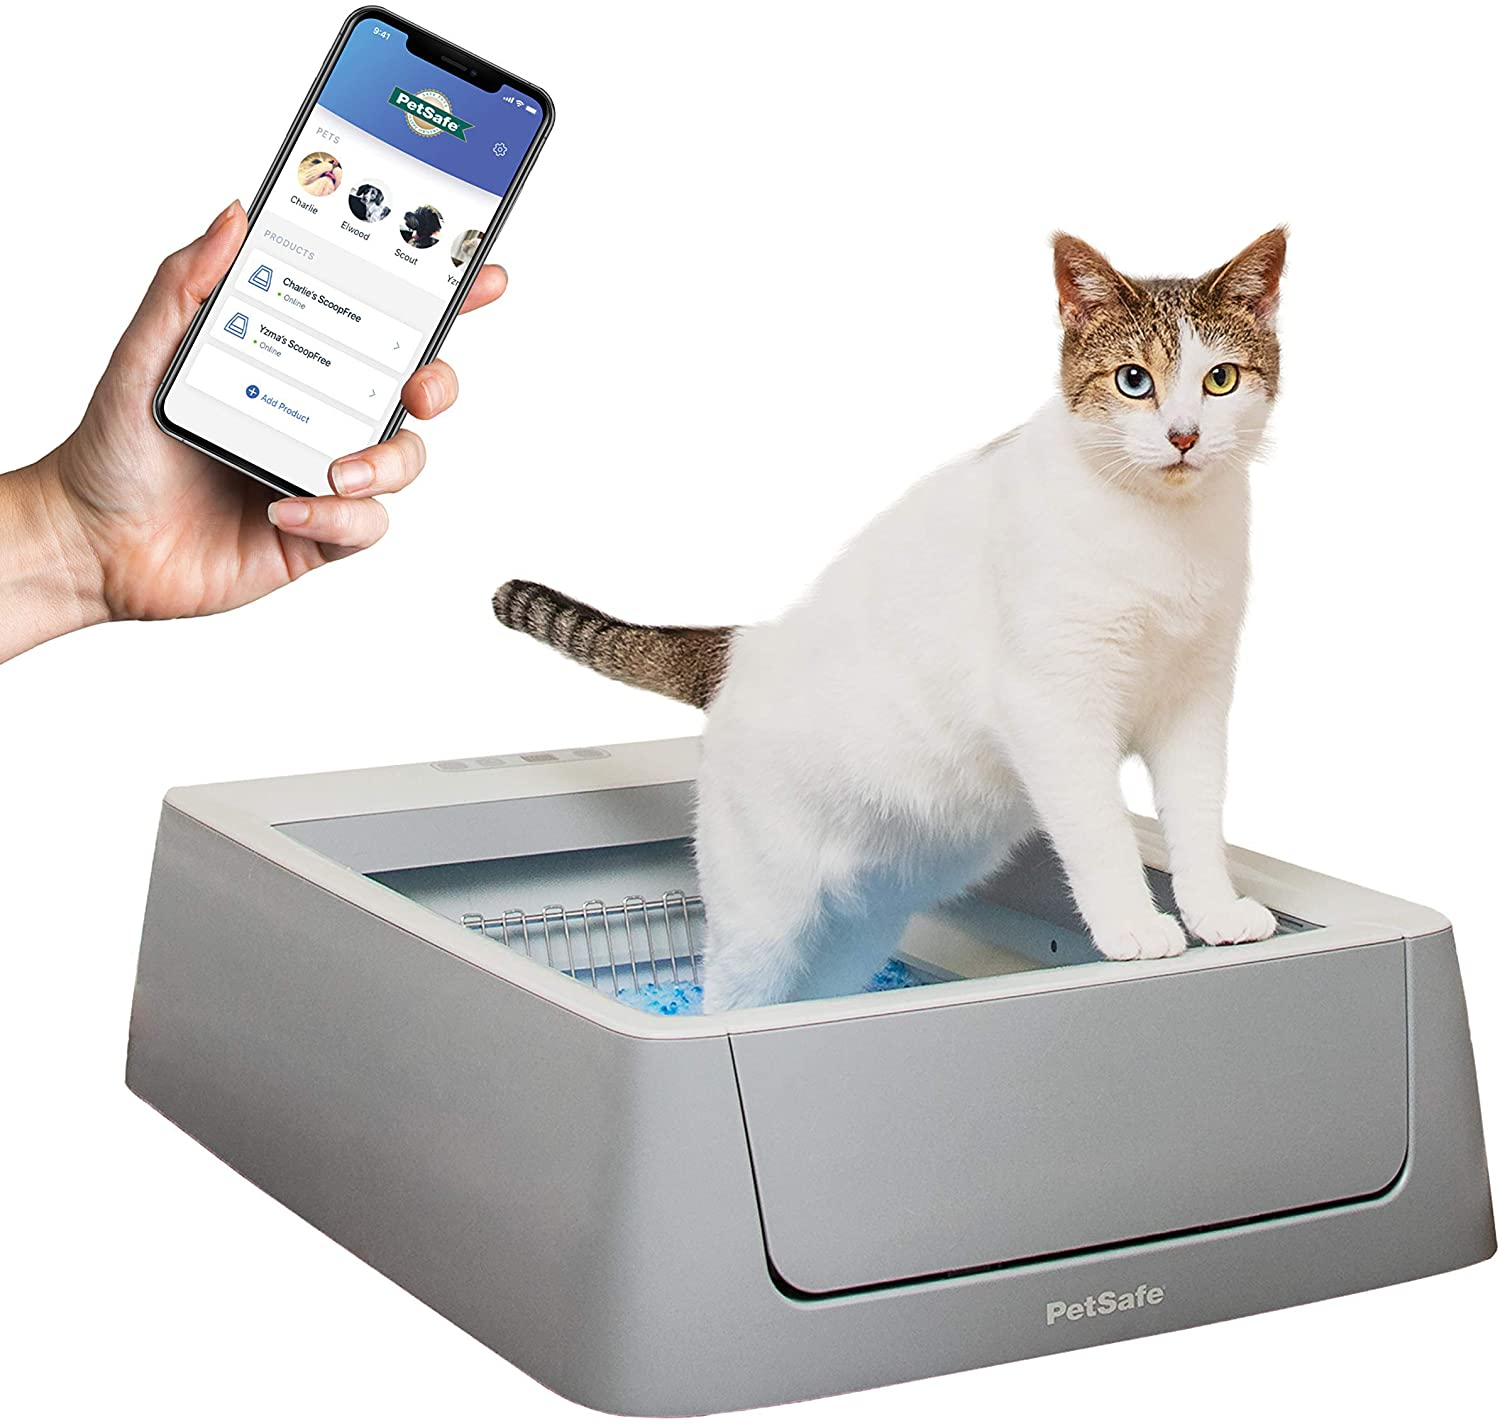 PetSafe ScoopFree Automatic Self-Cleaning Cat Litter Boxes - 2nd Generation or Smart, WiFi Connected, iOS or Android App Tracking - Includes Disposable Litter Tray with Premium Blue Crystal Cat Litter